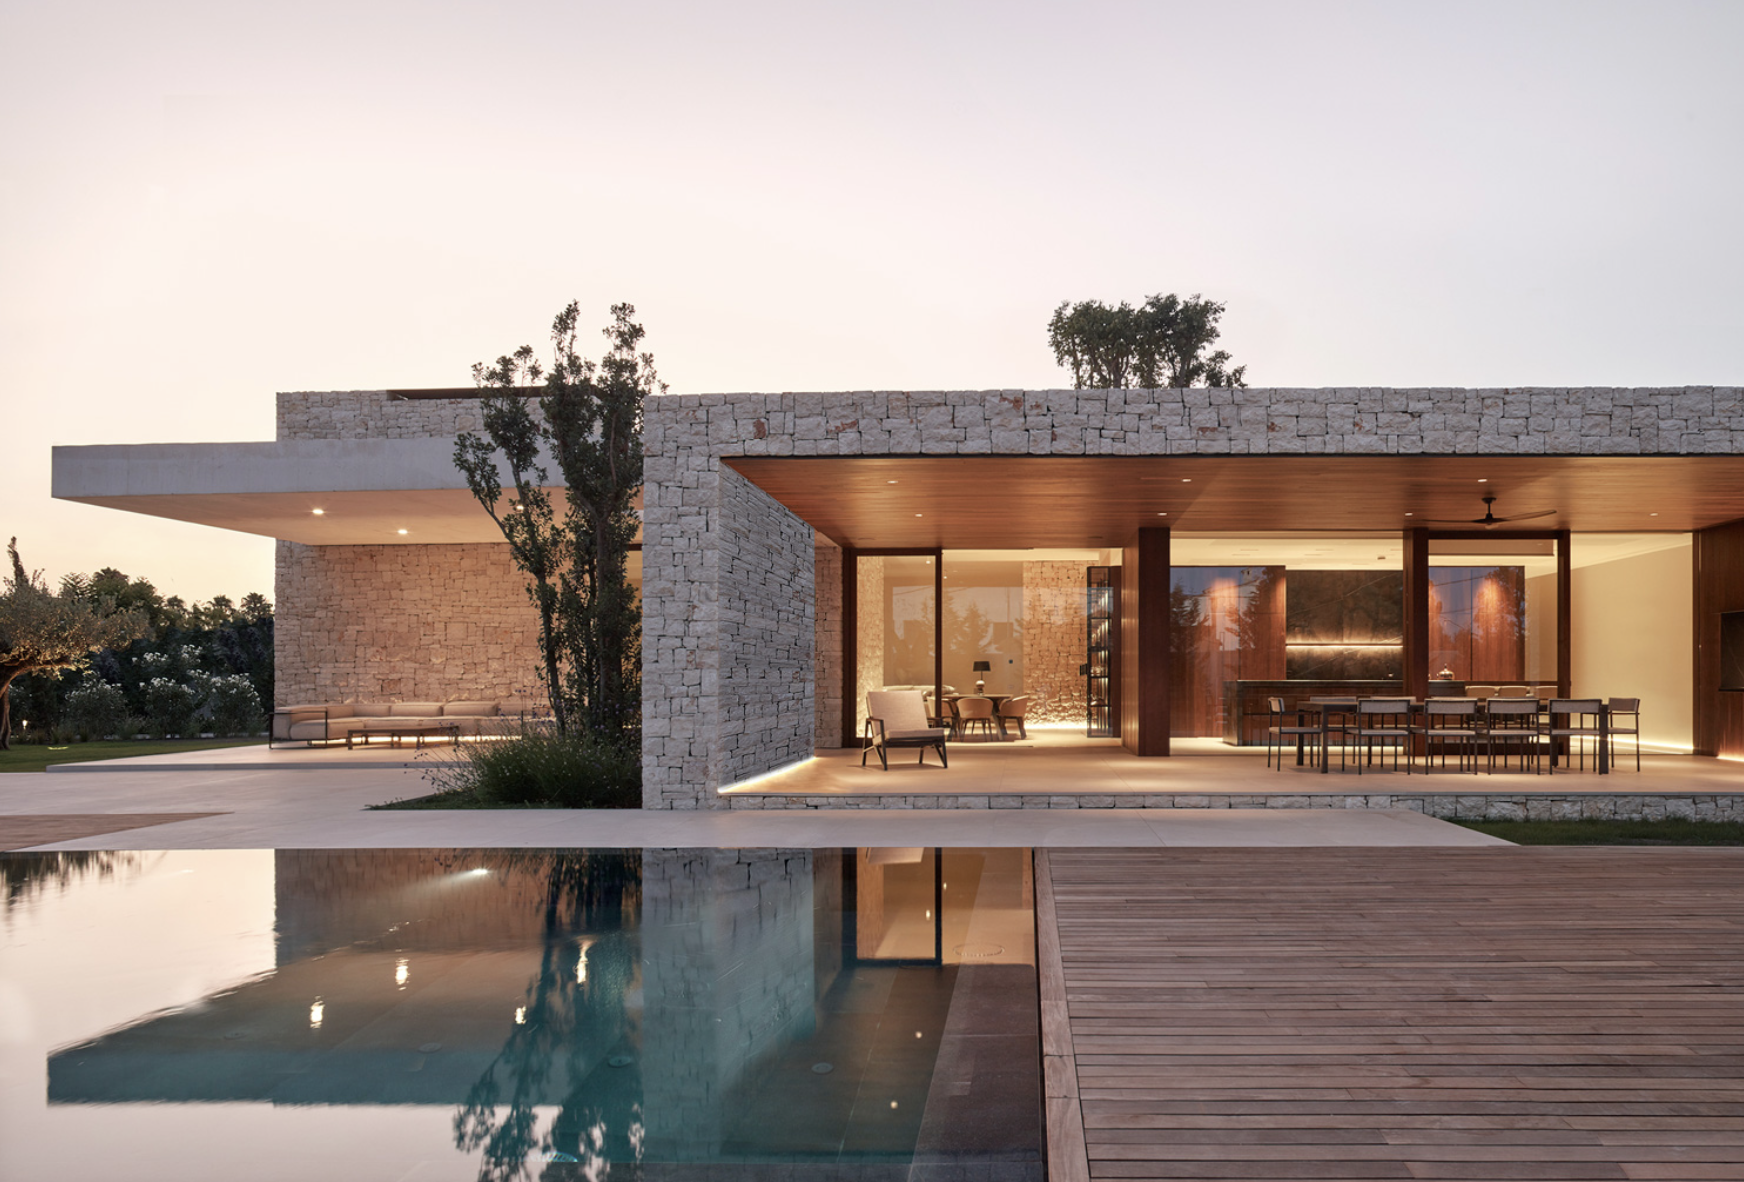 Madrigal house is based on boxes and courtyards